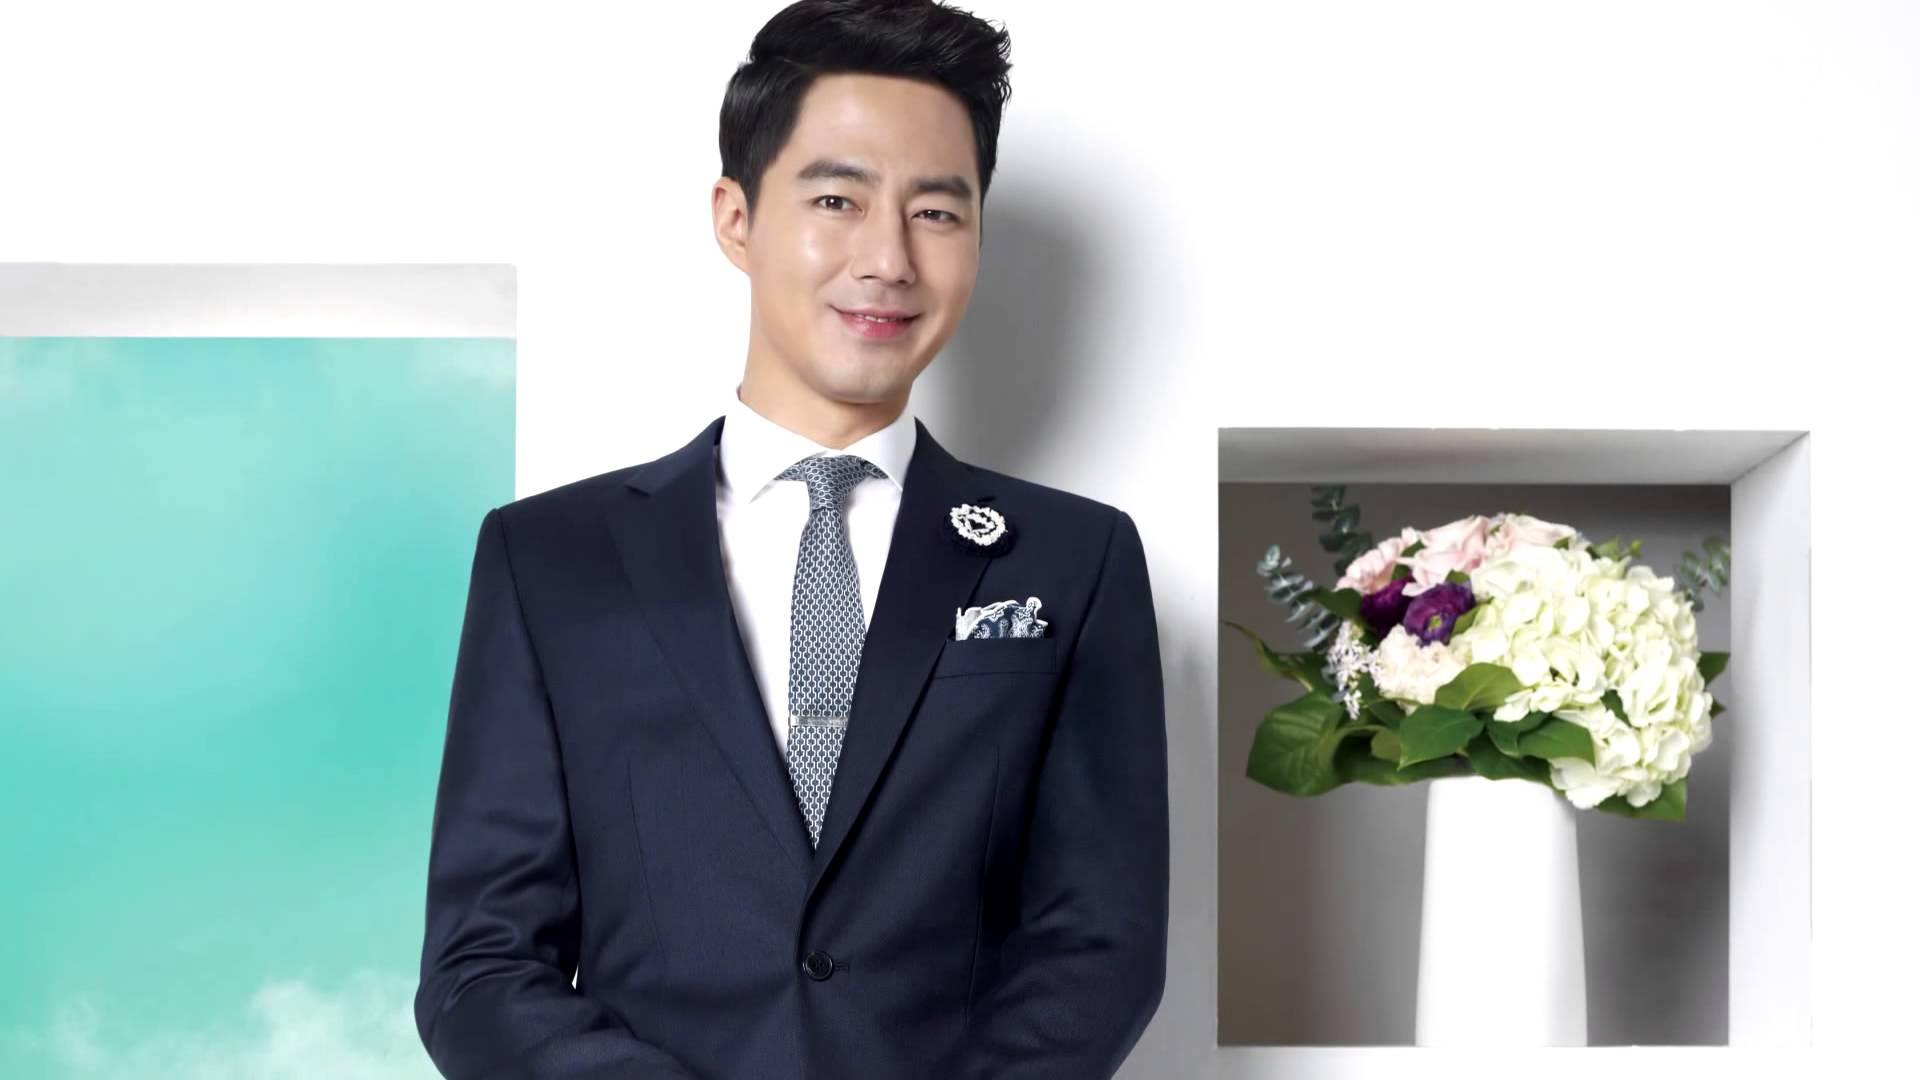 Source: JoInSung